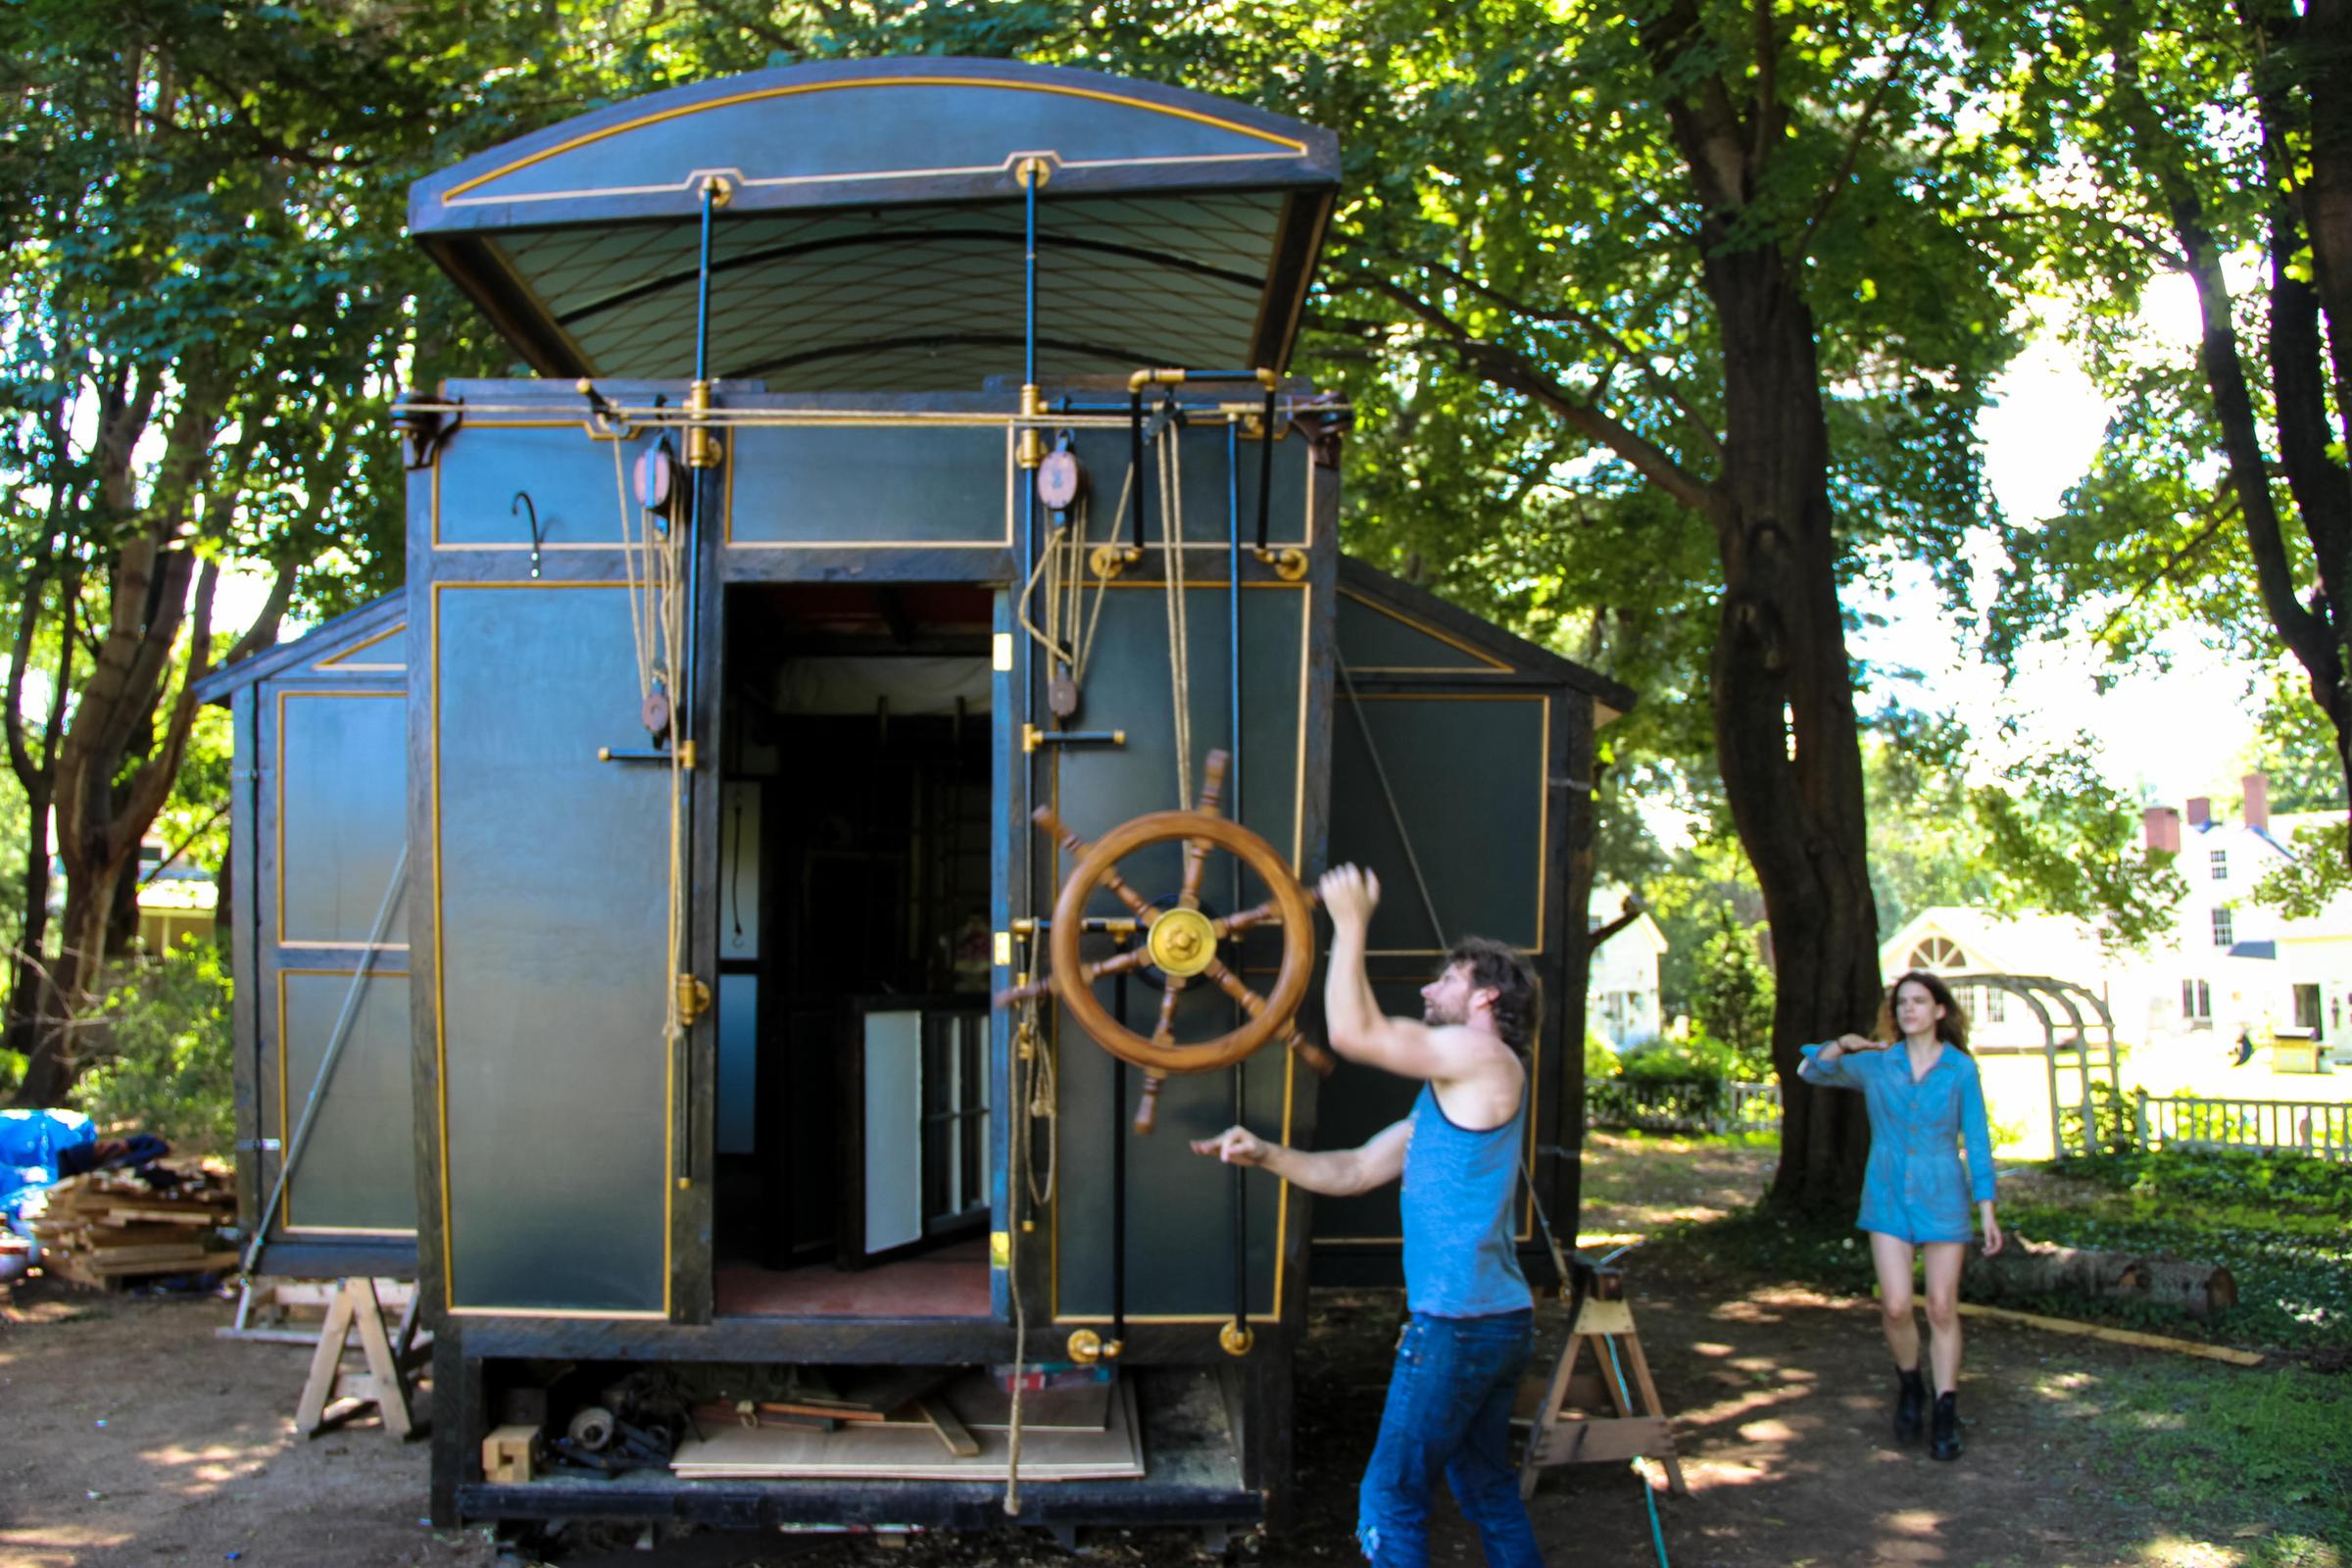 Steampunk Steamer Trunk - A Tiny House Contraption on Wheels ... on raised roof home, raised roof design, flat house plans, garage house plans, condo house plans, floor house plans, raised roof kitchen, raised roof construction, windows house plans, tv house plans, heavy duty house plans,